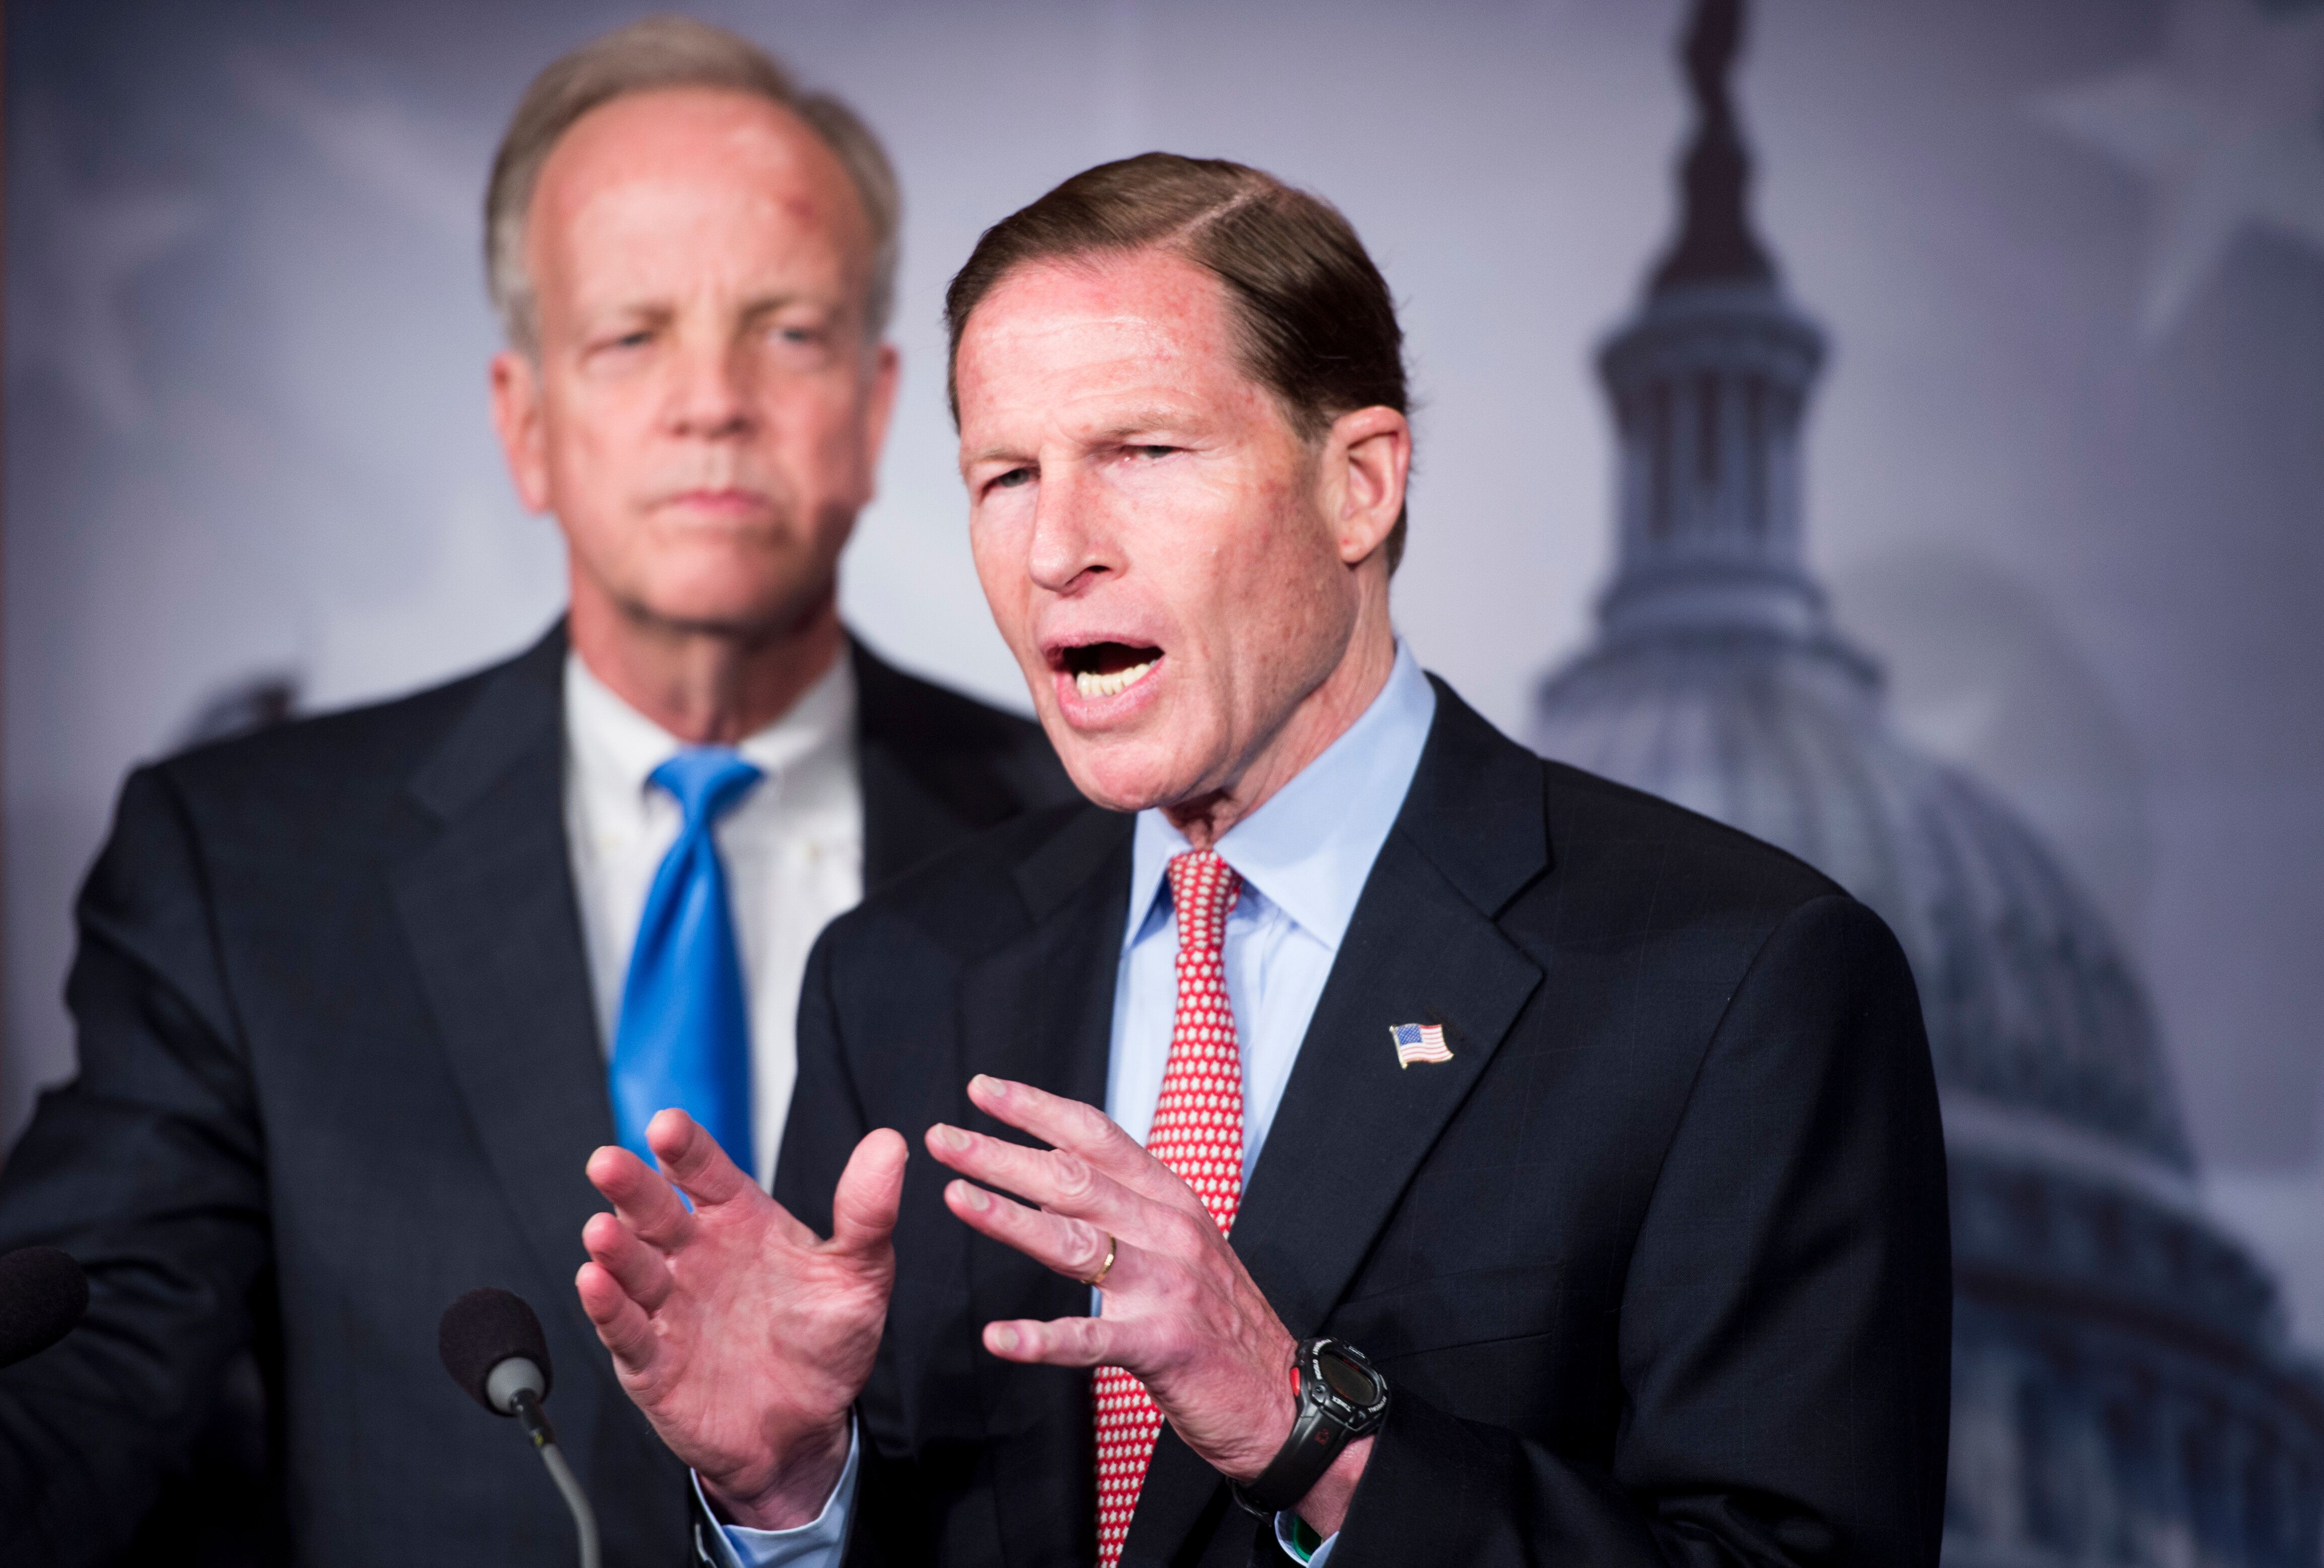 Sens. Jerry Moran (R-Kan.), left, and Richard Blumenthal (D-Conn.), right, have proposed a bill that aims to protect Olympic